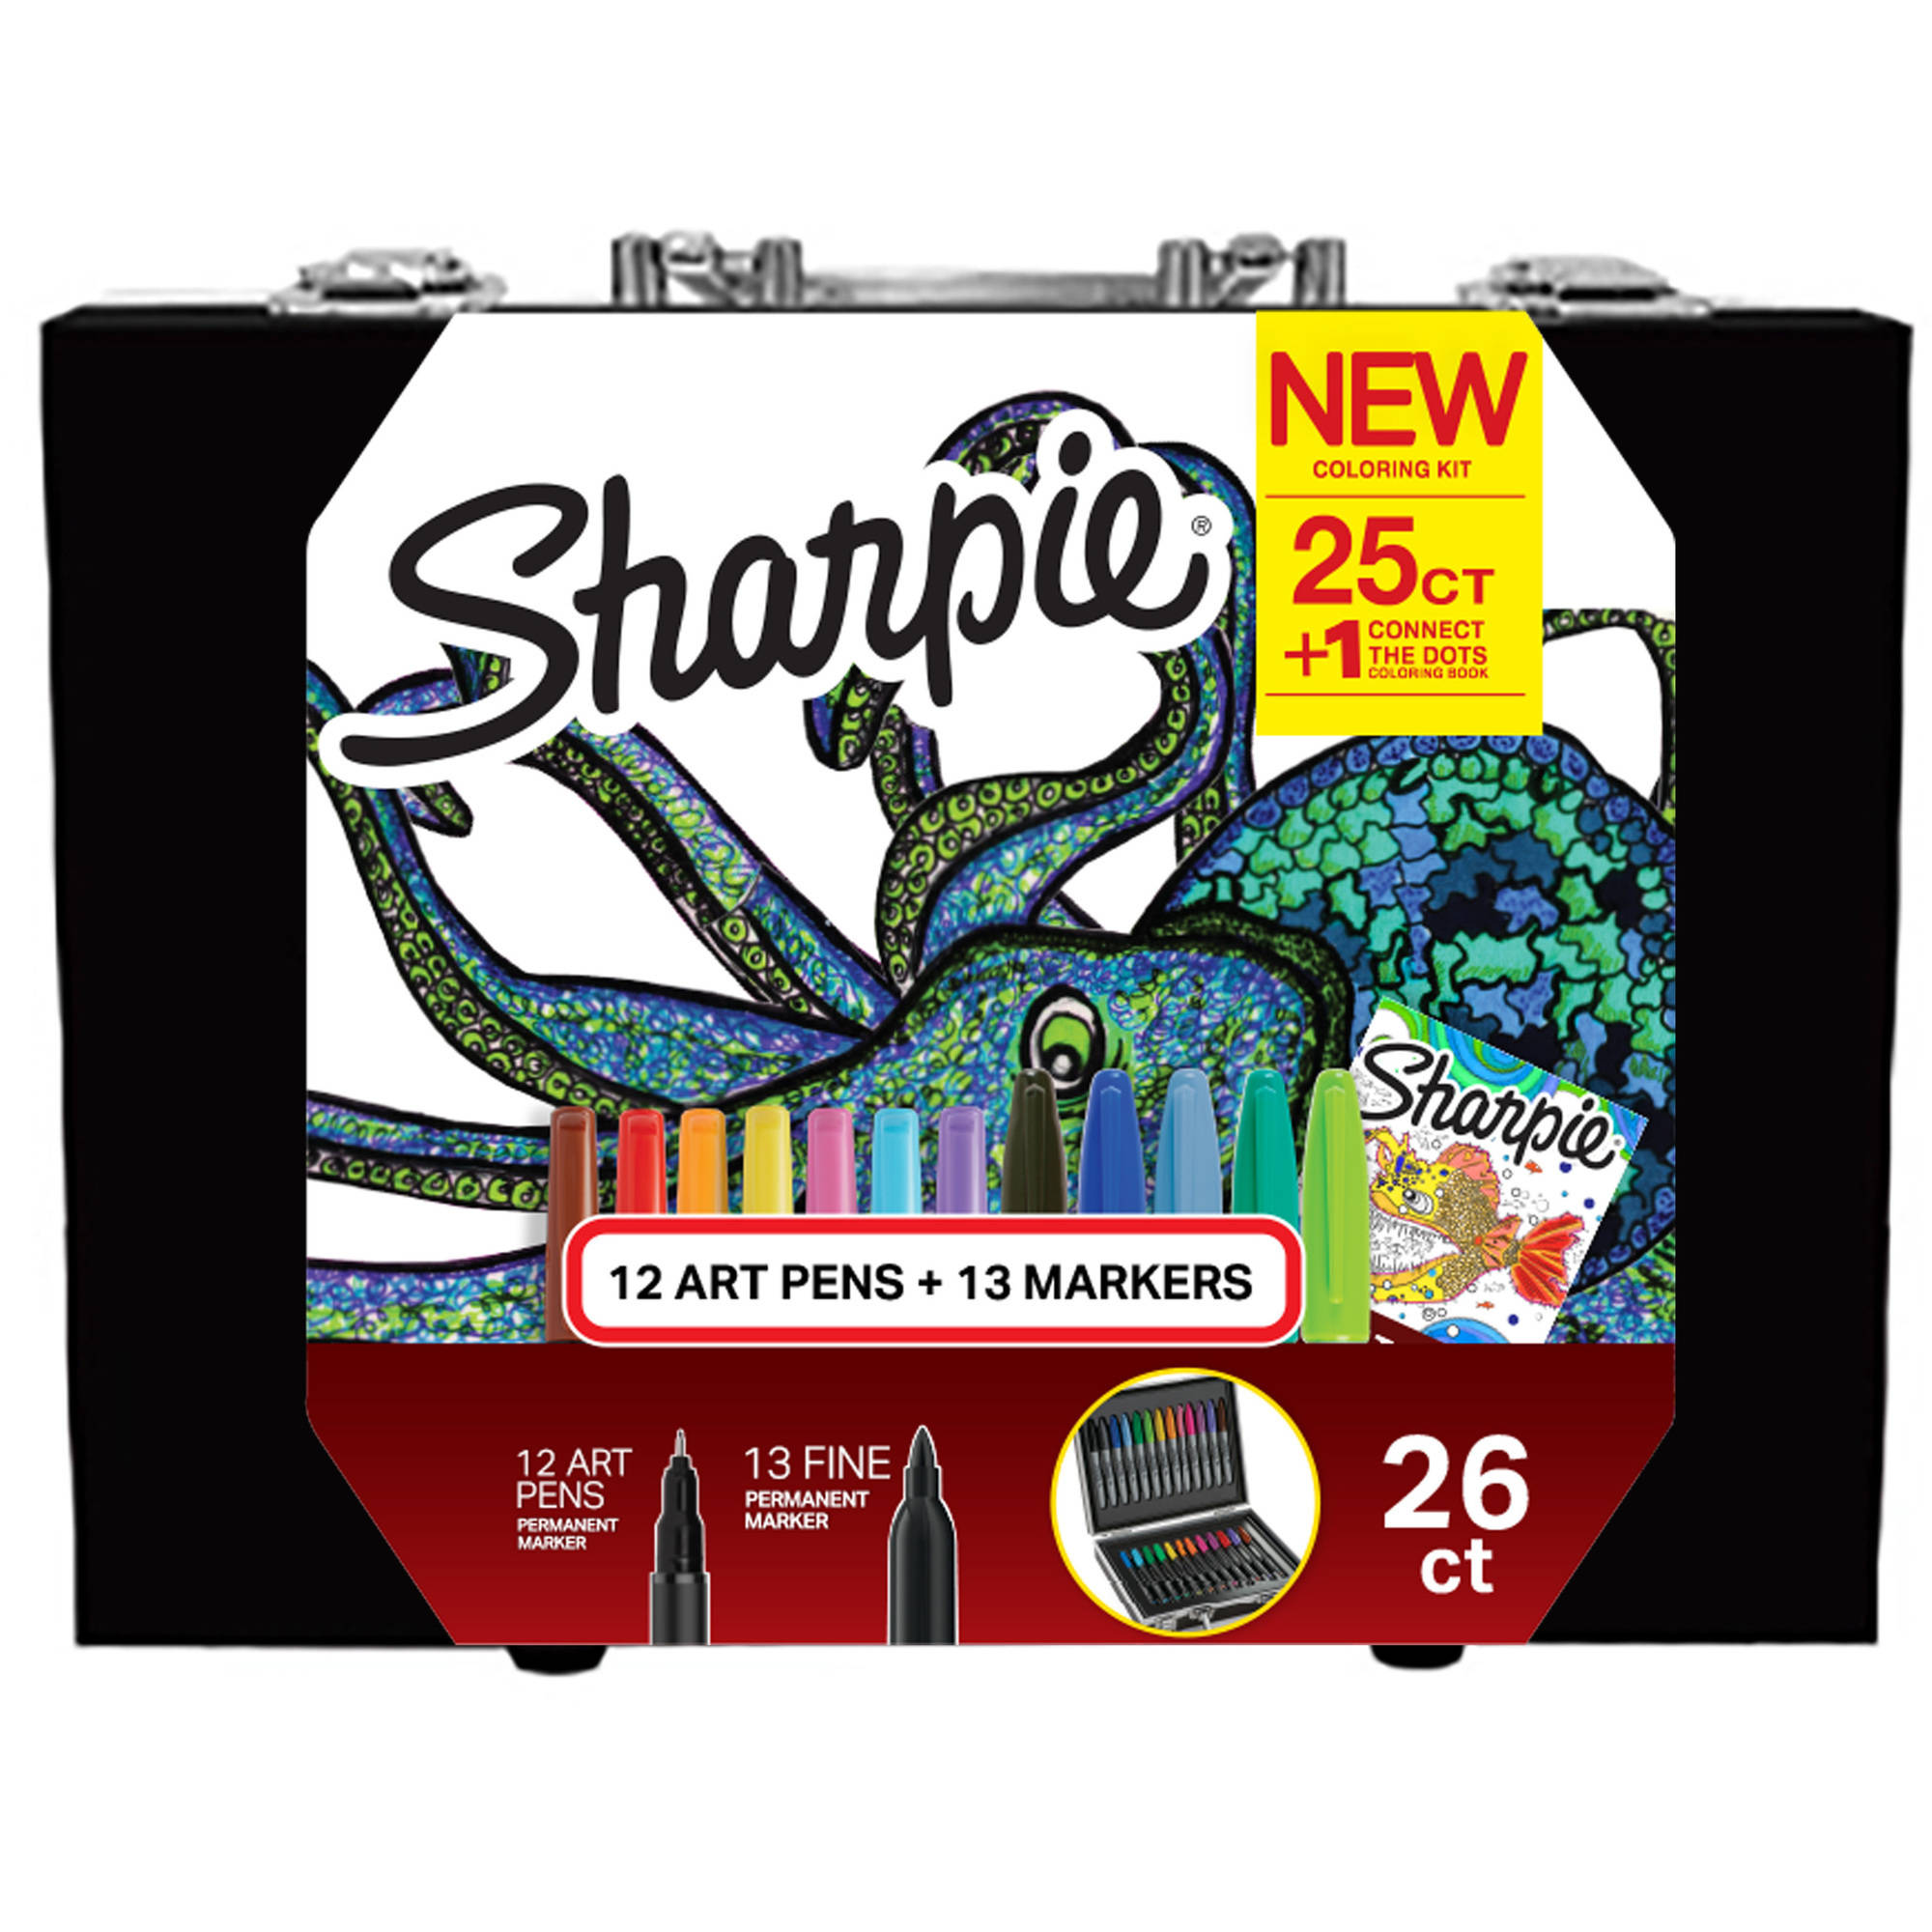 sharpie coloring kit with permanent markers art pens and coloring booklet hard case 26 count walmartcom